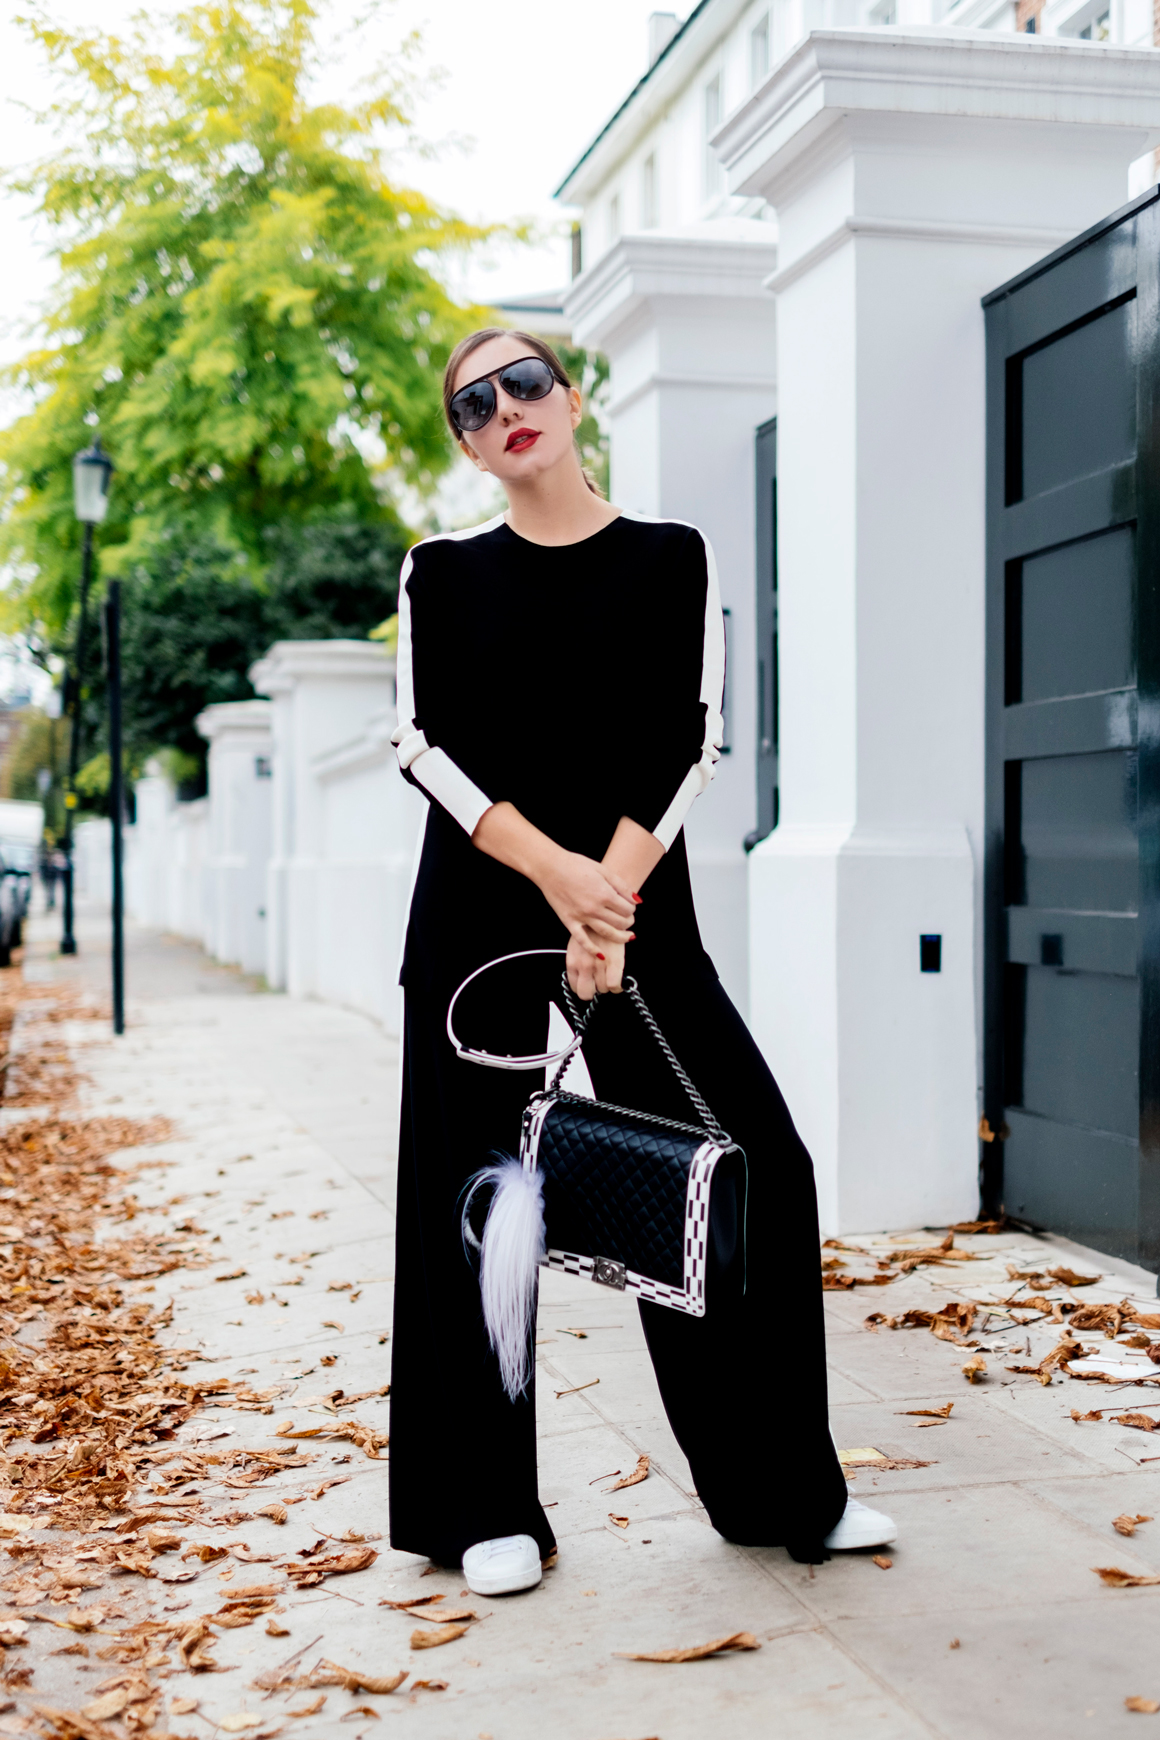 7 More Minutes. Fashion, travel and lifestyle blog by Alyona Gasimova. Back to black. Yes, It's Normcore And It's Contagious. www.7moreminutes.com